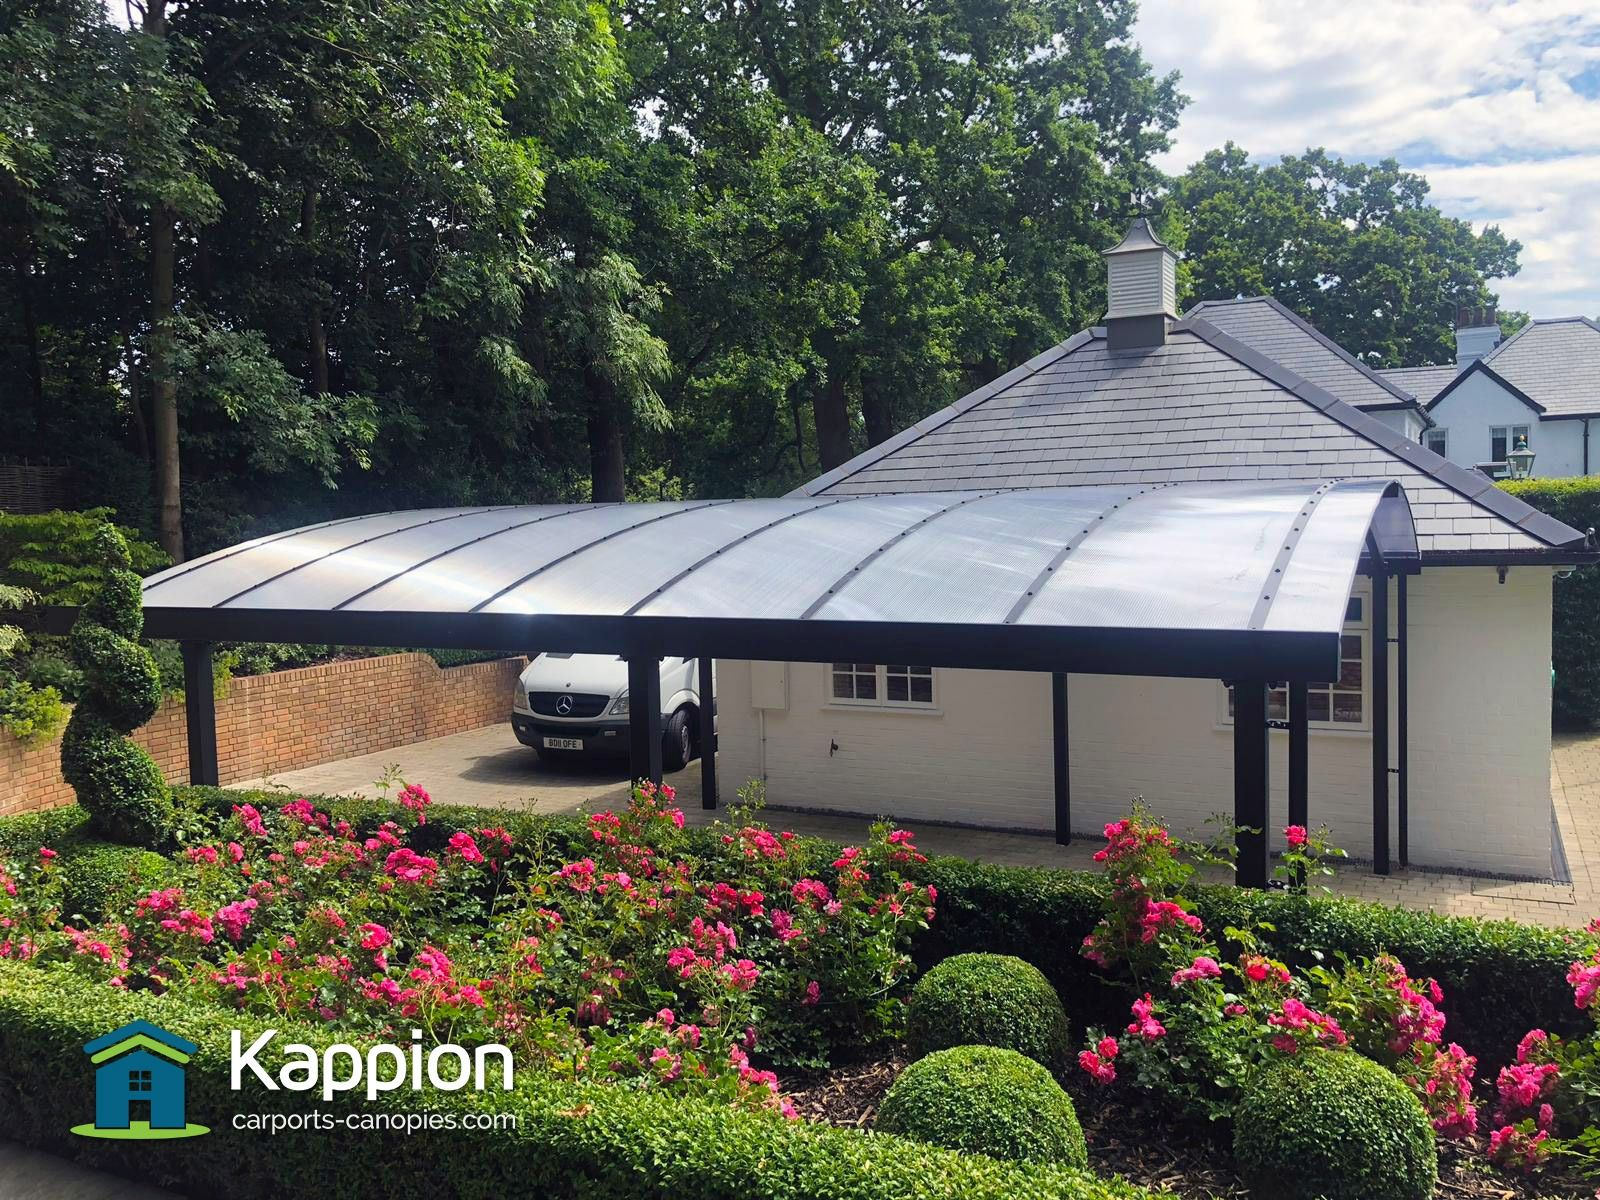 A contemporary curved carport installed next to a